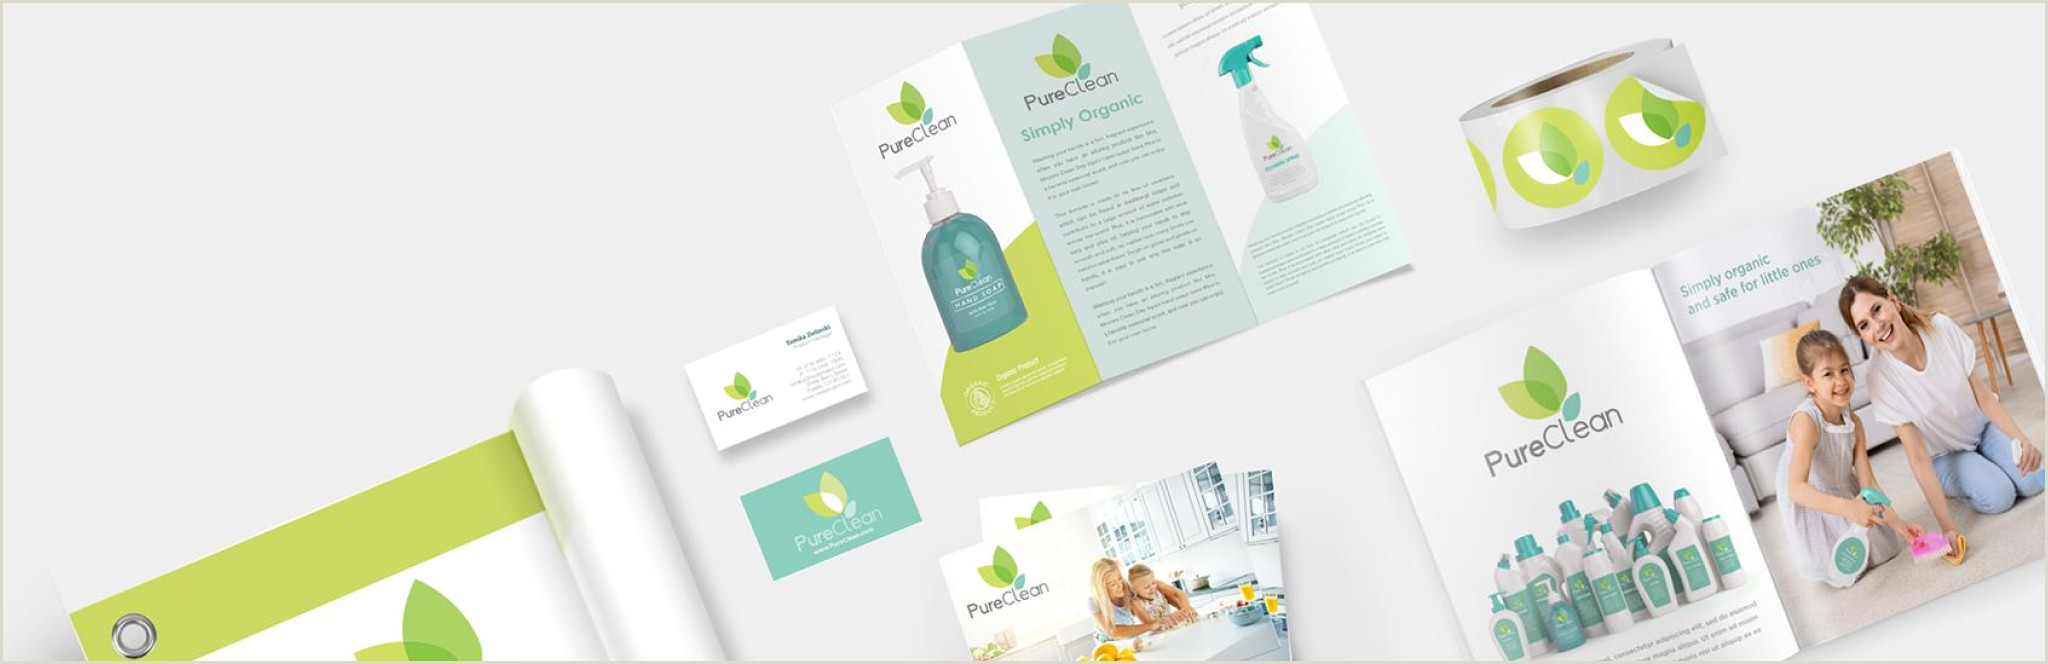 Unique Politcal Business Cards Printplace High Quality Line Printing Services